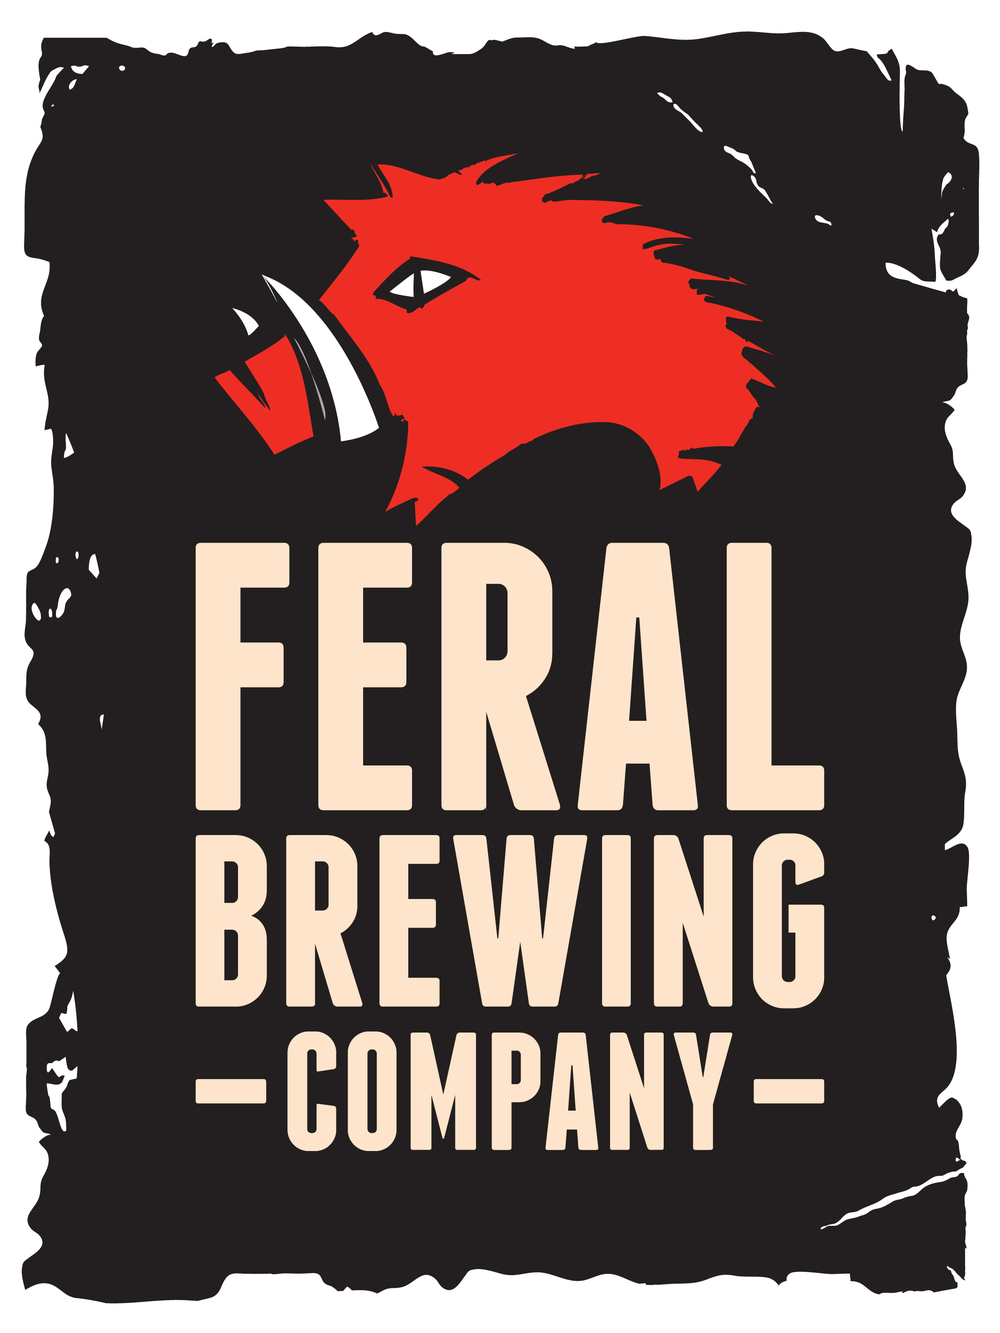 Good Afternoon Bridgees,       We have another craft beer tasting lined up for you this afternoon, our very own and highly awarded  Feral Brewery  from the Swan Valley here in Western Australia.  Since we have been here at Old Bridge, we have seen Feral consistently produce exception craft beer, winning awards, such as Australia's number #1 beer for their  Hop Hog , in the Hottest 100  3 YEARS  running! and pushing the boundaries of what can be considered 'sessionable', such as their exceptional KarmaCitra, a toasty and Hoppy dark beer that is never not in my fridge.  Come down and try these brews, and talk craft beer with the Feral and Old Bridge Team,  Open will be.....   Hop Hog Pale Ale : Exploding with citrusy flavours and hop aromas , rounded with a solid malt back bone. A farmload of American hops makes Hop Hog uniquely Feral and just a little fruity!   Karma Citra India Black Ale : An IPA that has been souped-up, American citra hops have been combined with dark malts to produce a smooth brew with chocolate and toffee undertones and a big tropical and citrus aroma. Jay's favourite, you have to try!   Sly Fox Summer Ale : This sneaky little beer is light on its feet but still packs a punch of flavour. Lightly filtered to get a vibrant hoppy aroma with a clear bitterness that pairs with a hot, summers day.  As always, In-store, at  Old Bridge Cellars  in North Fremantle, from  4.00pm - 7.00pm Today ,  Thursday the 17th of December 2015.   See you all down here,       Jay and the Old Bridge Team